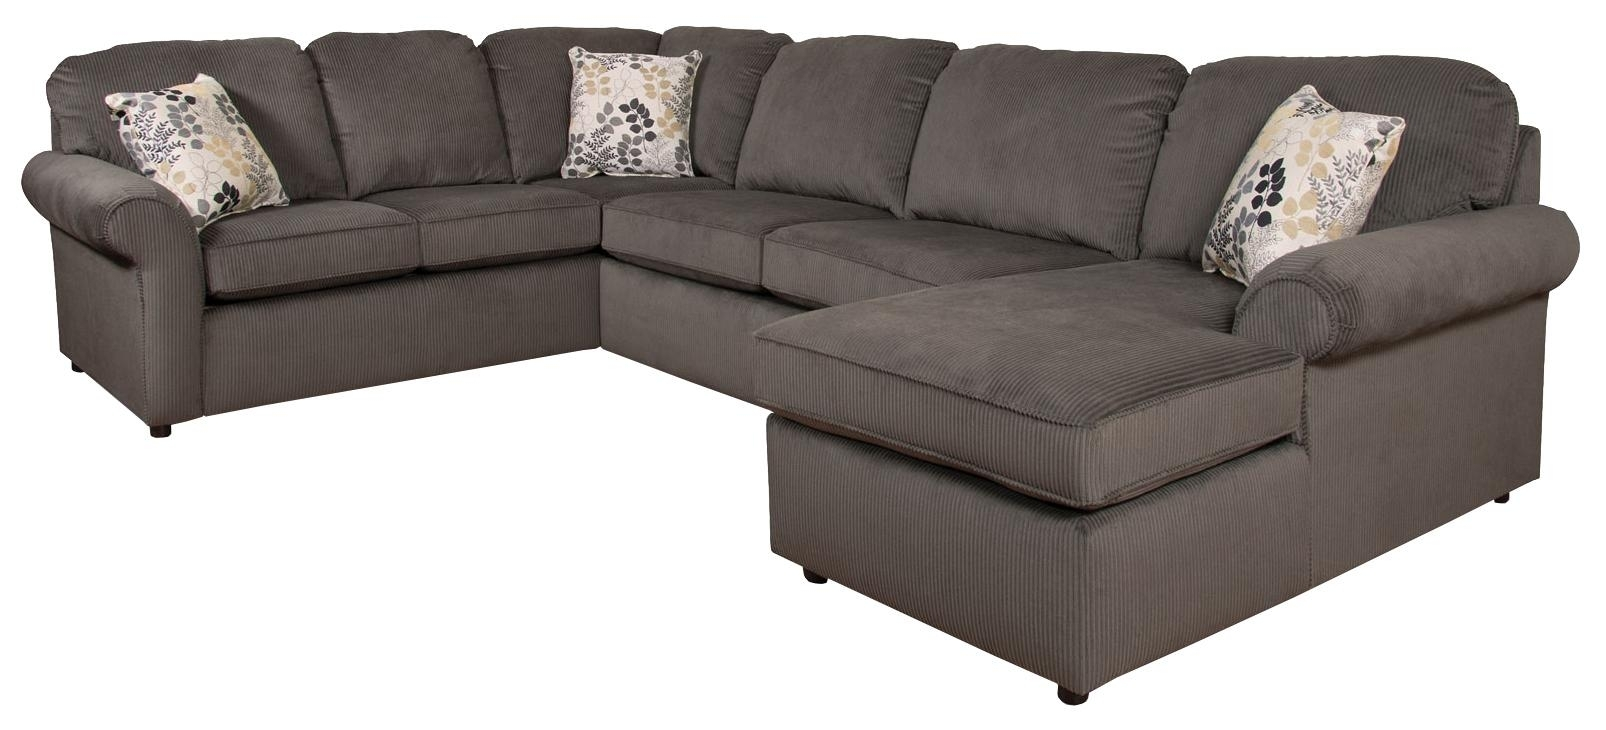 England Malibu 5 6 Seat (Right Side) Chaise Sectional Sofa | Dunk For England Sectional Sofas (View 4 of 10)